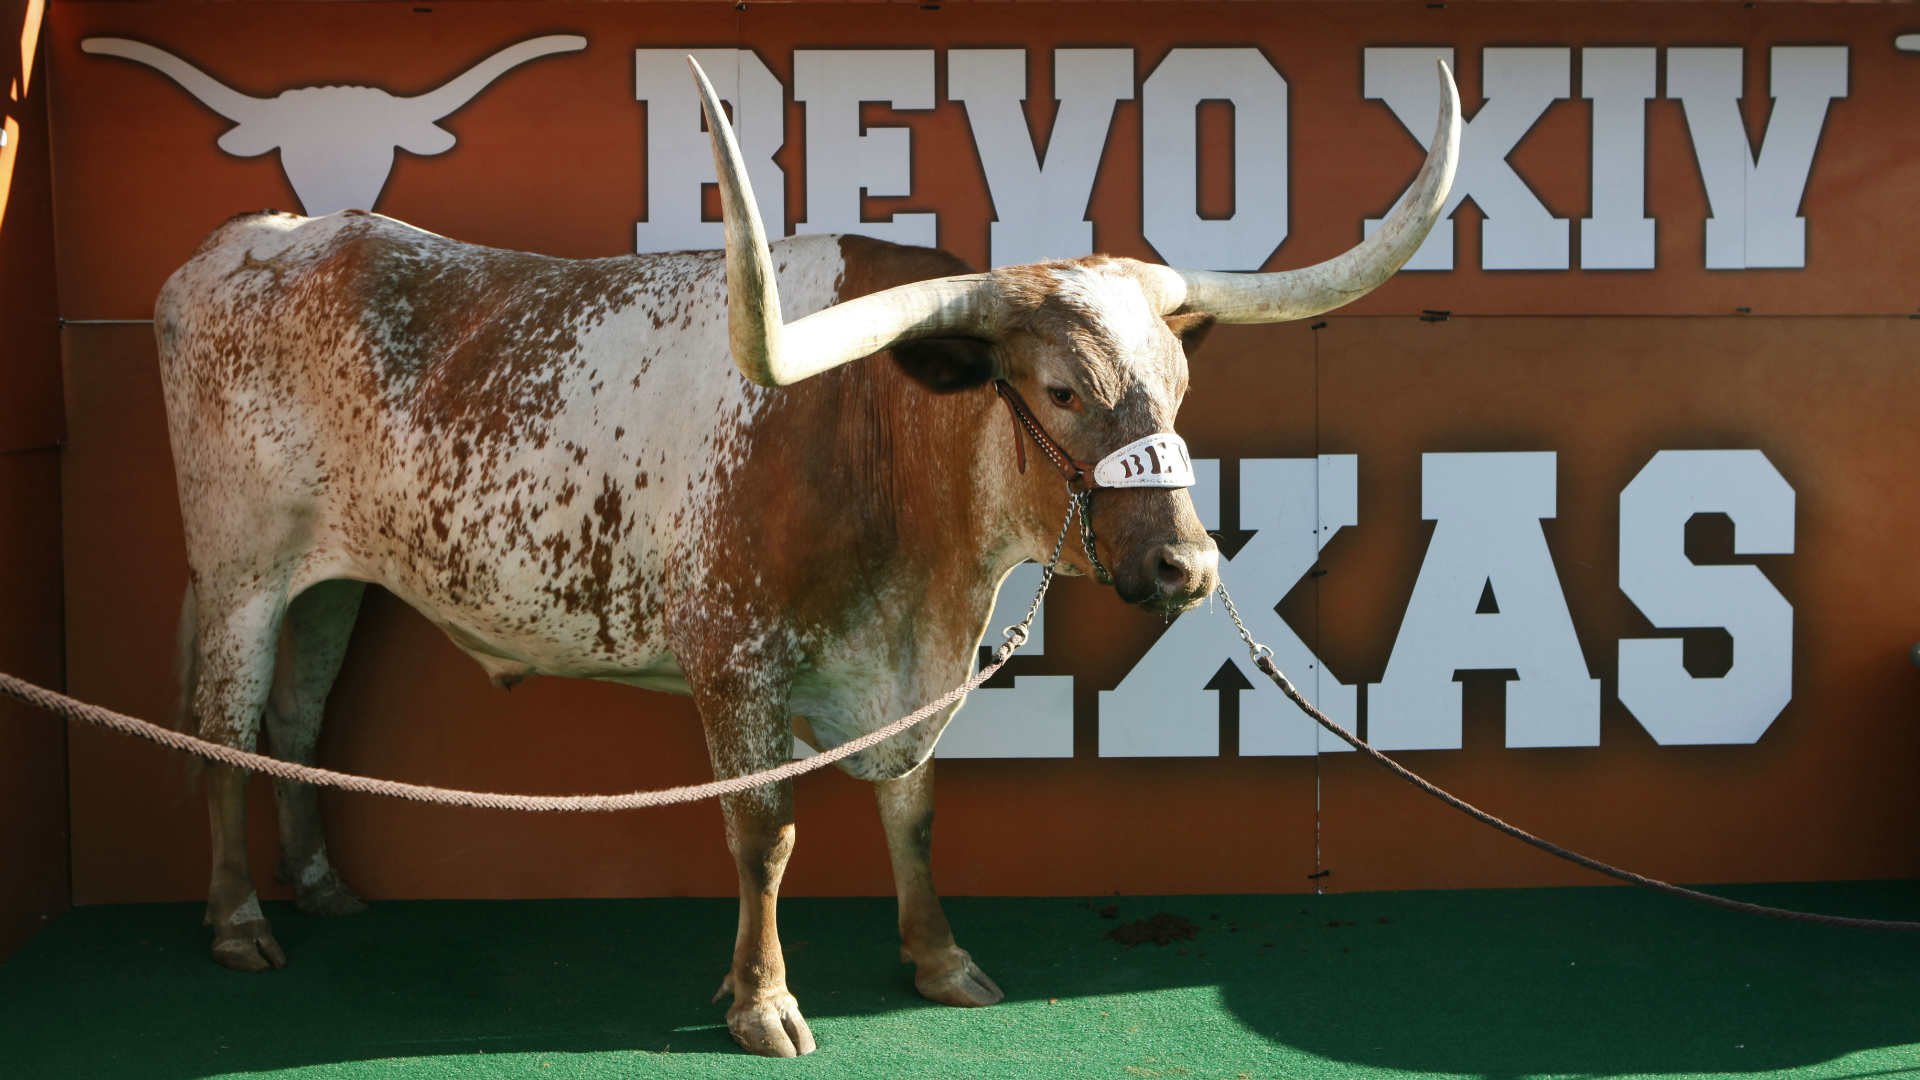 1920x1080 Texas Longhorns mascot Bevo retires after cancer diagnosis | NCAA Football  | Sporting News